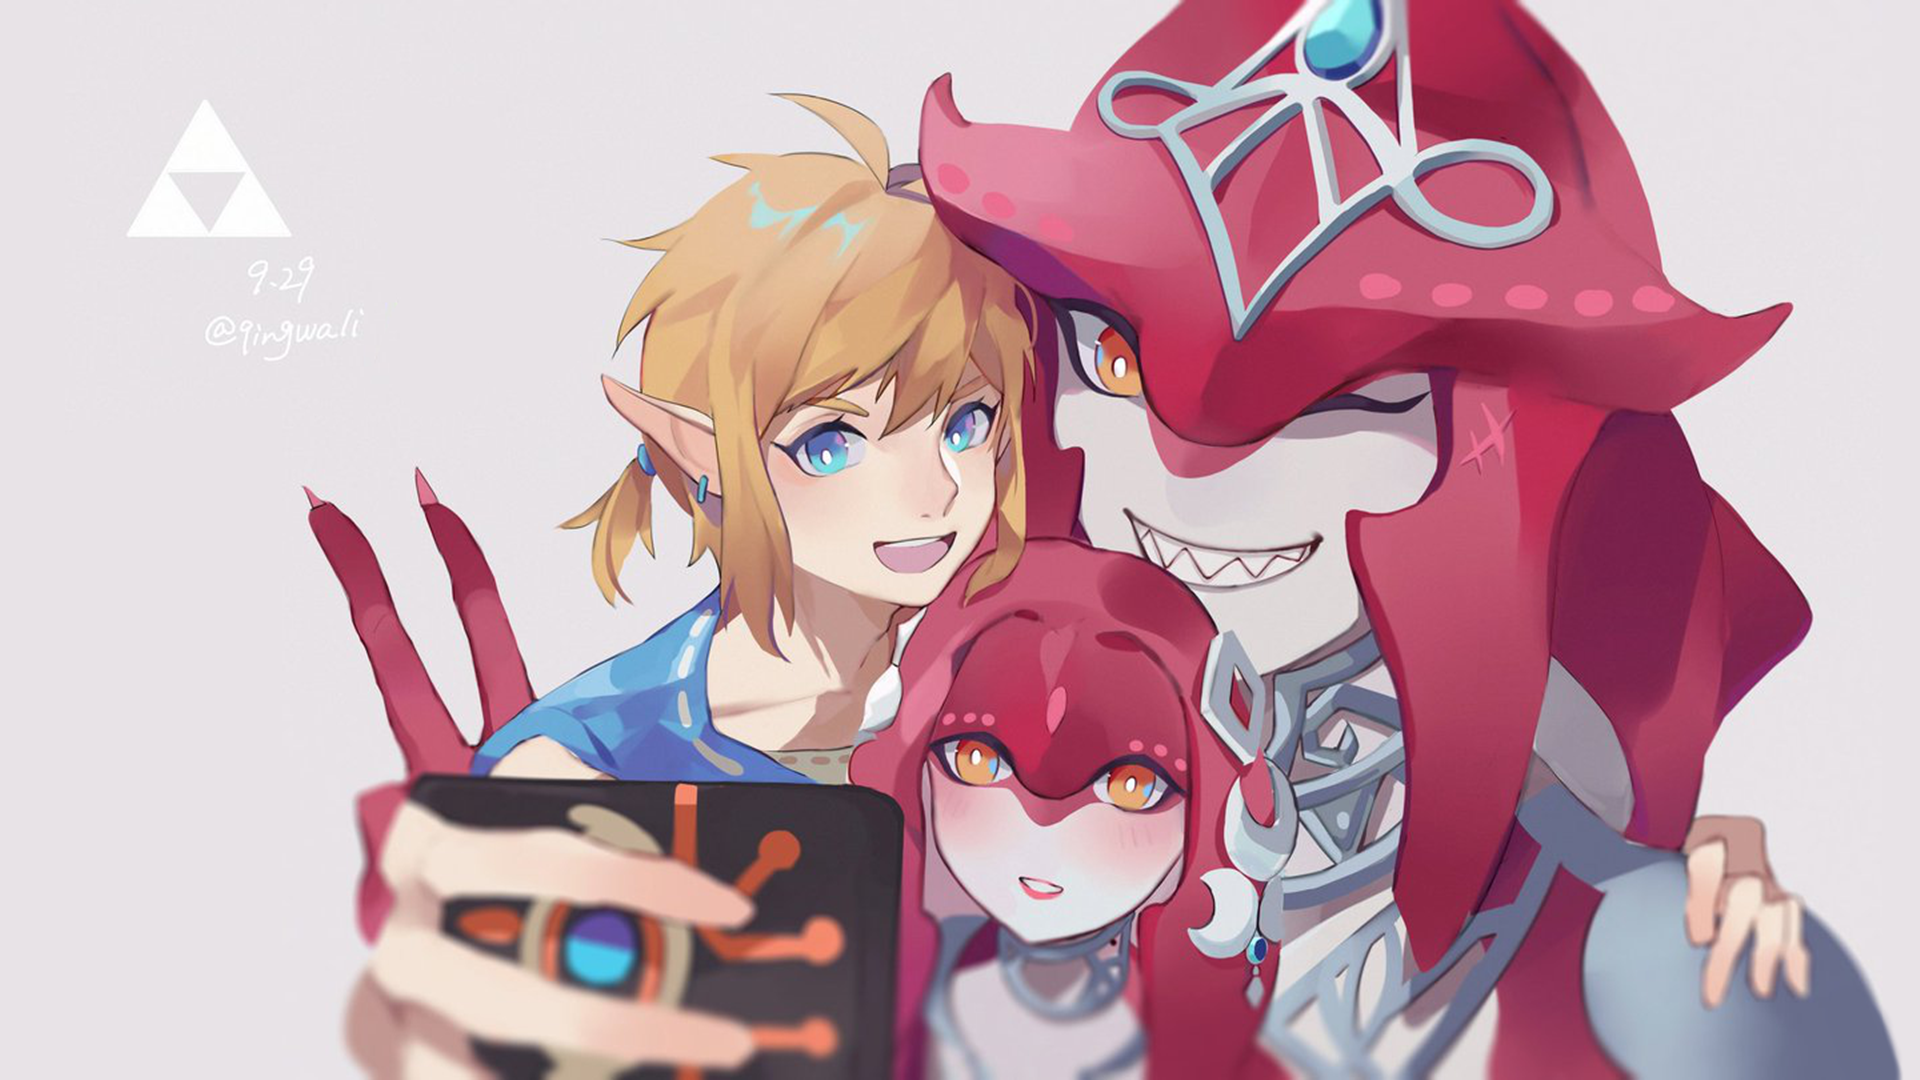 Zelda Mipha Sidon Hd Wallpaper Background Image 1920x1080